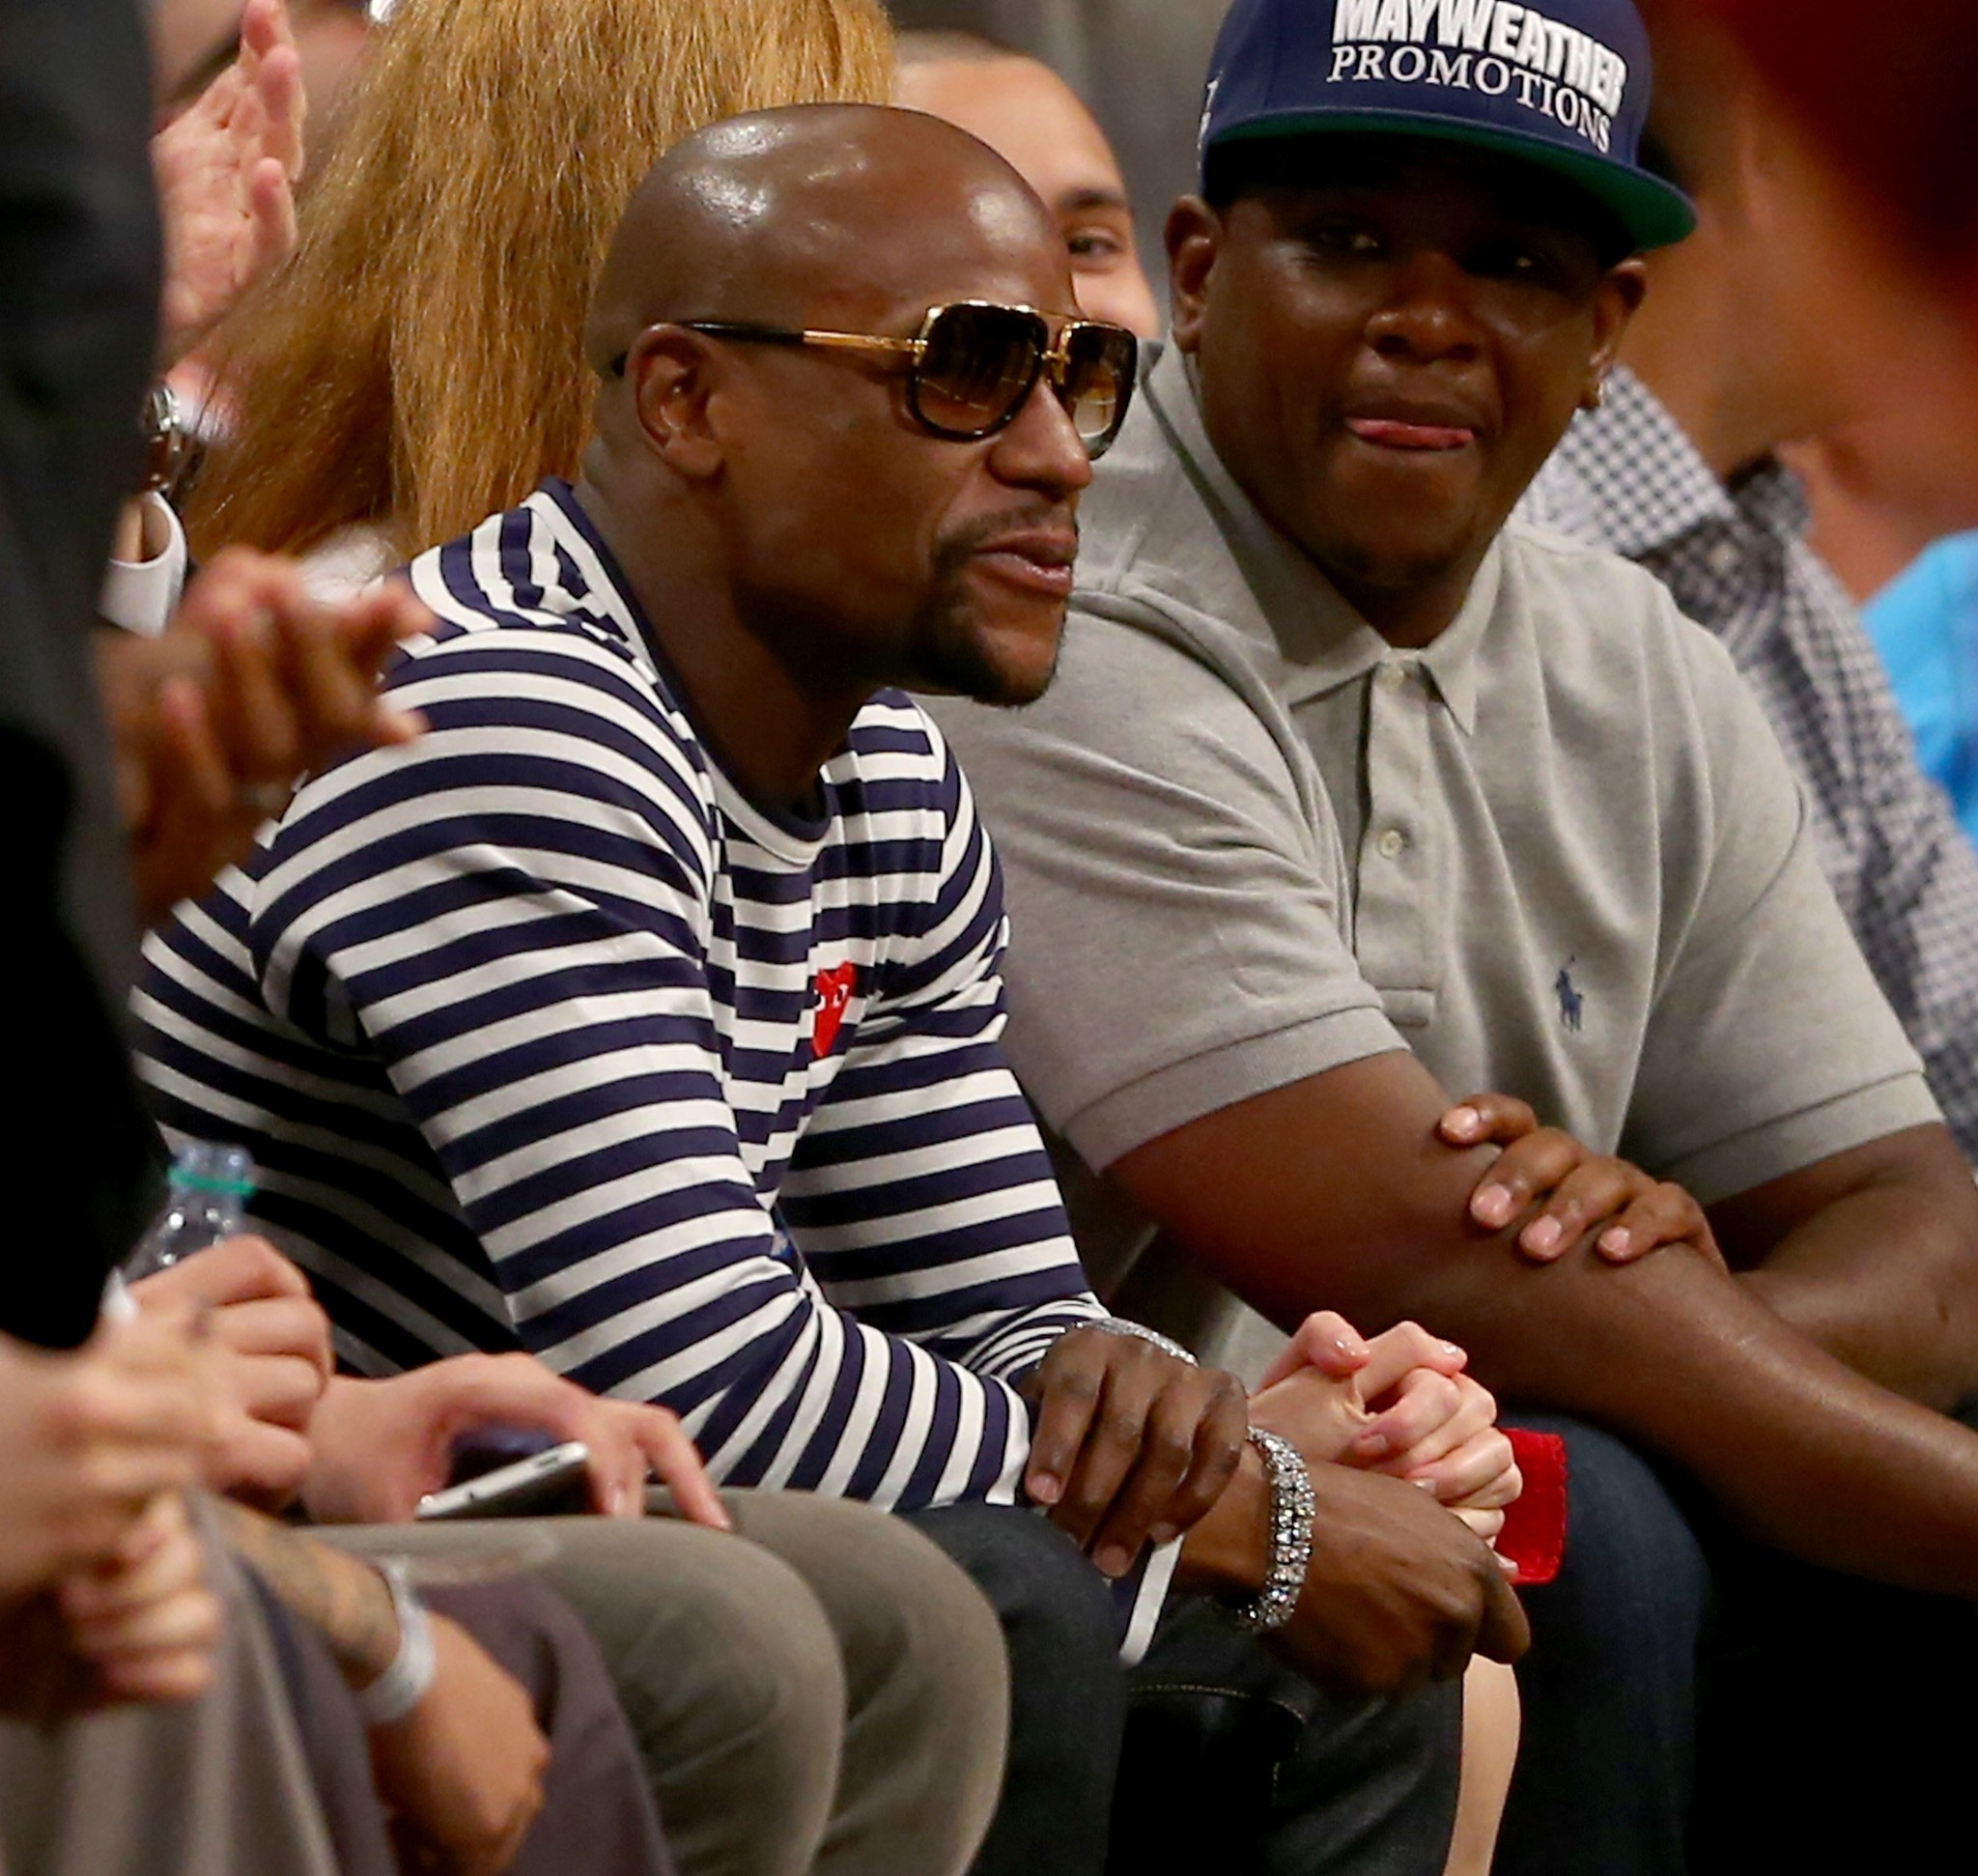 Celebs spotted at Miami Heat games - Floyd Mayweather Jr